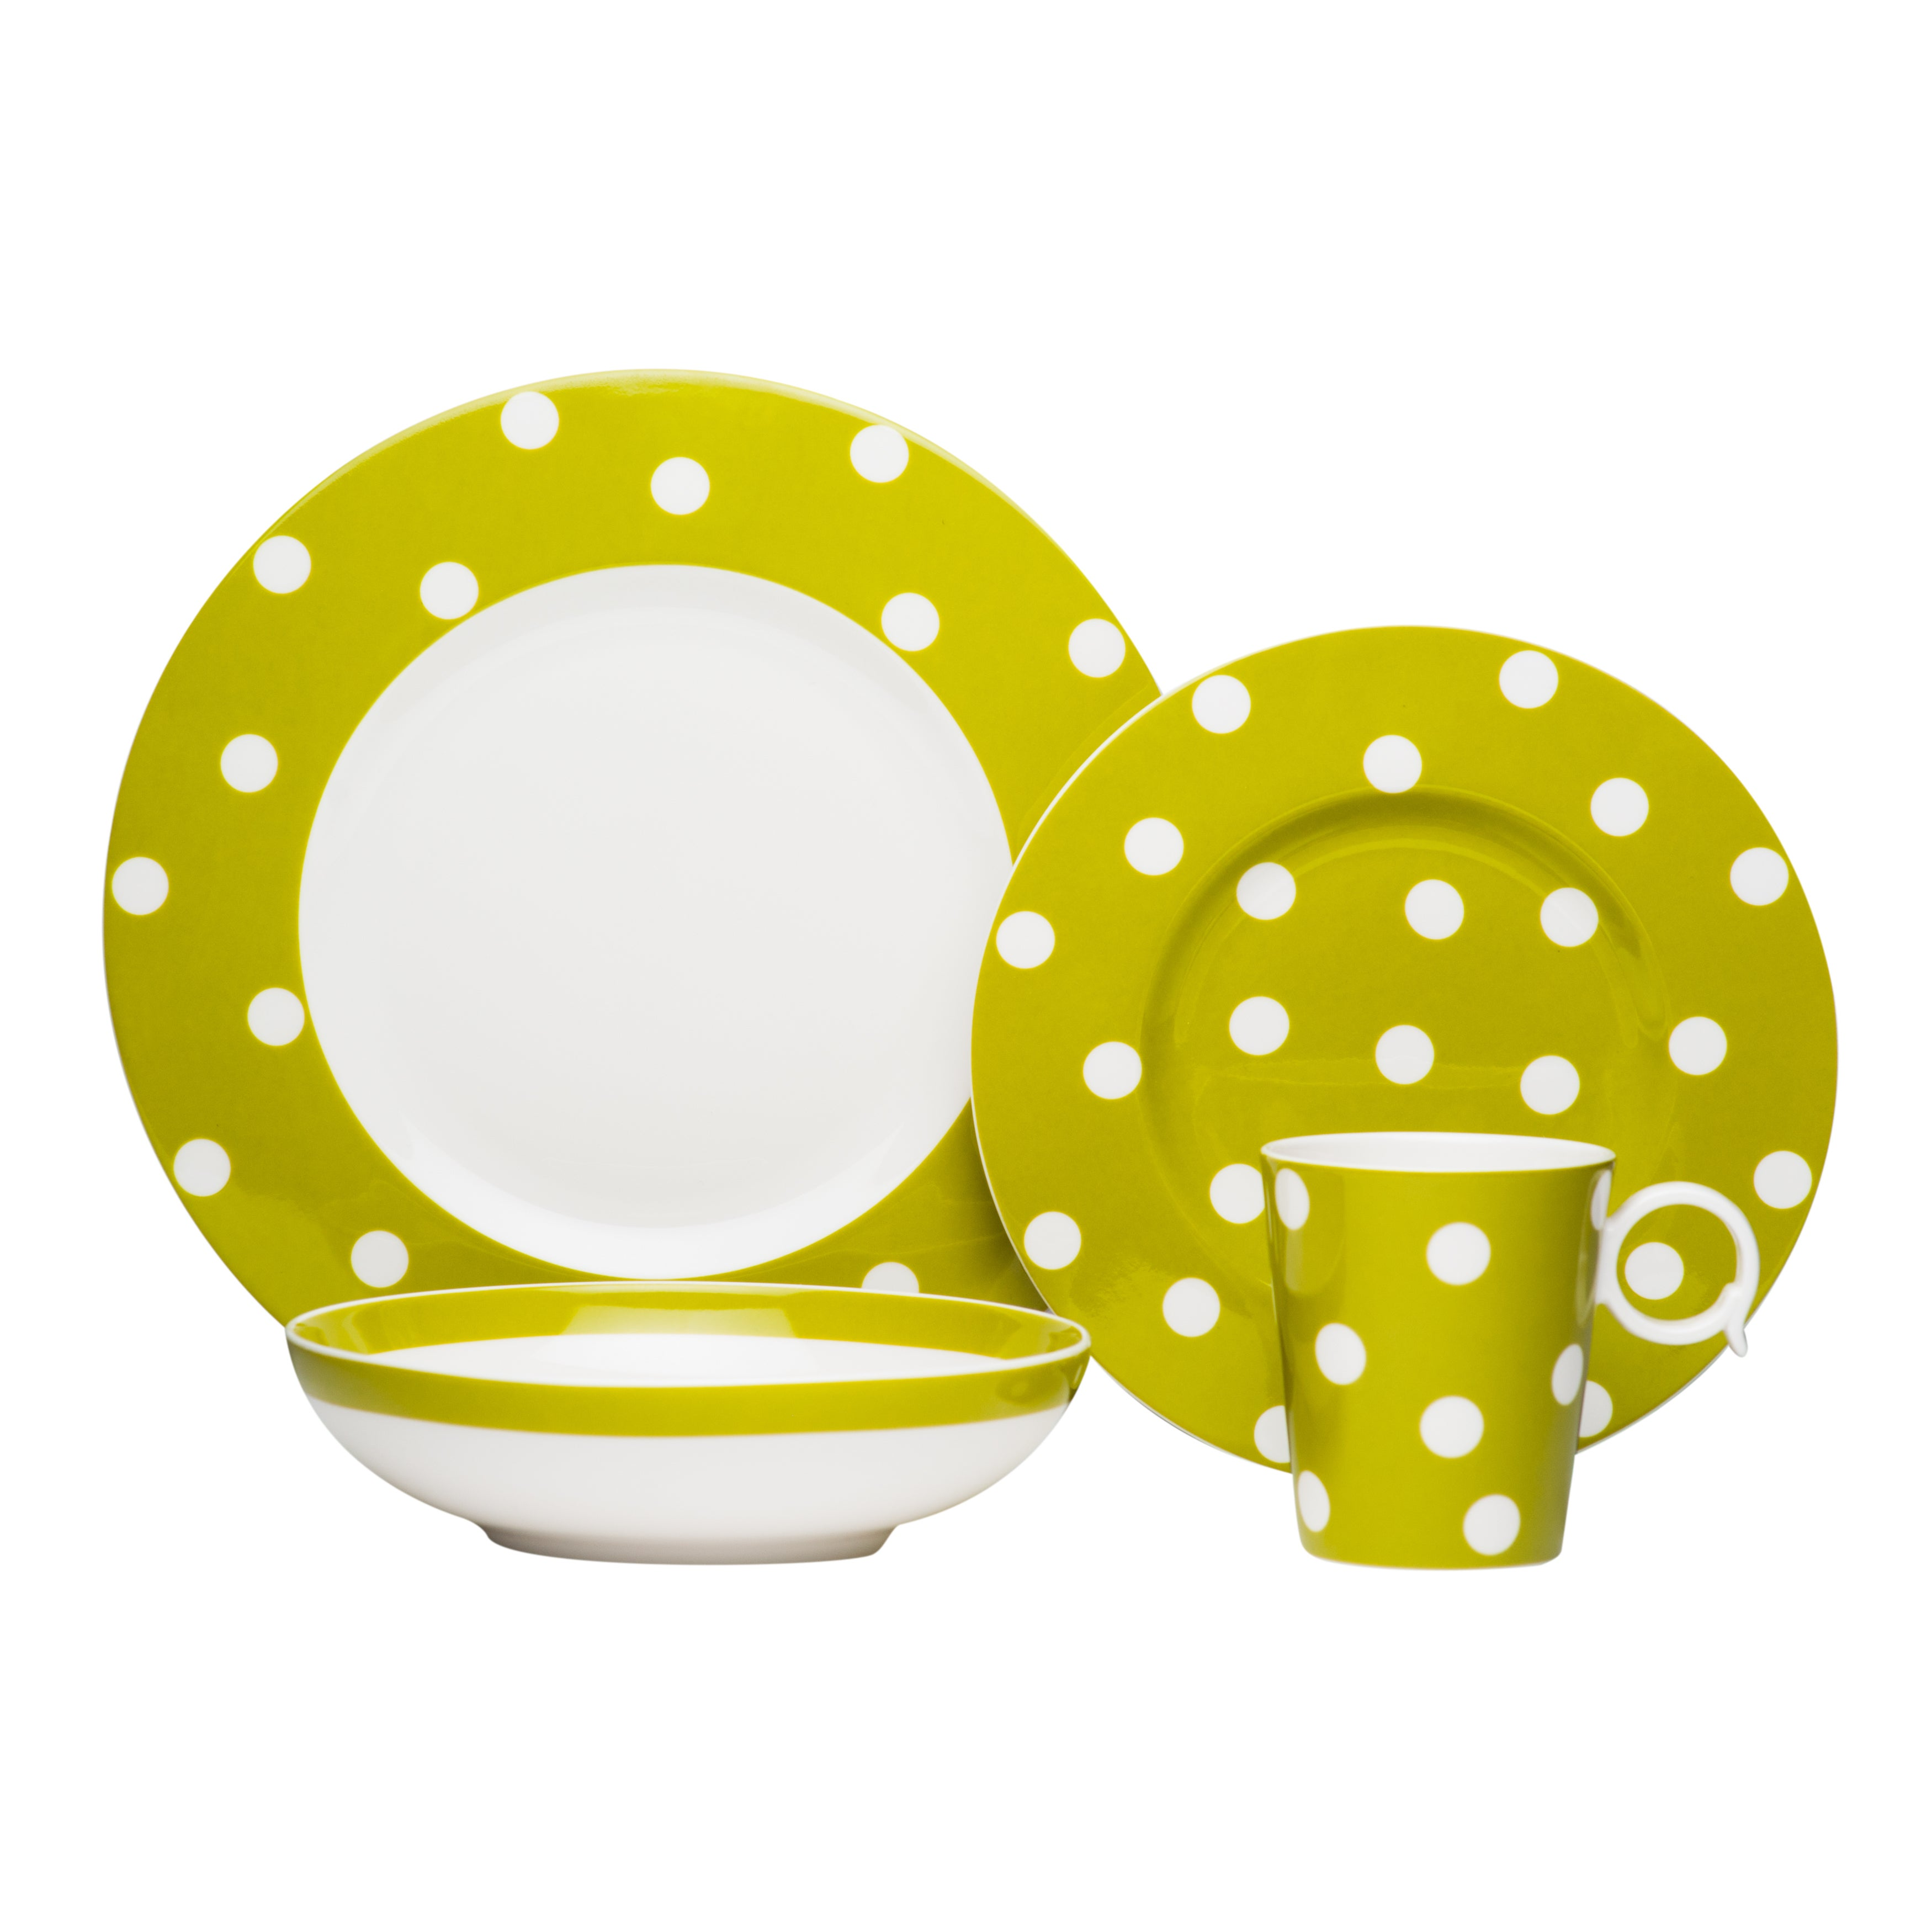 Red Vanilla Freshness Mix u0026 Match Dots Olive 4-piece Place Setting - Free Shipping Today - Overstock - 16317497  sc 1 st  Overstock & Red Vanilla Freshness Mix u0026 Match Dots Olive 4-piece Place Setting ...